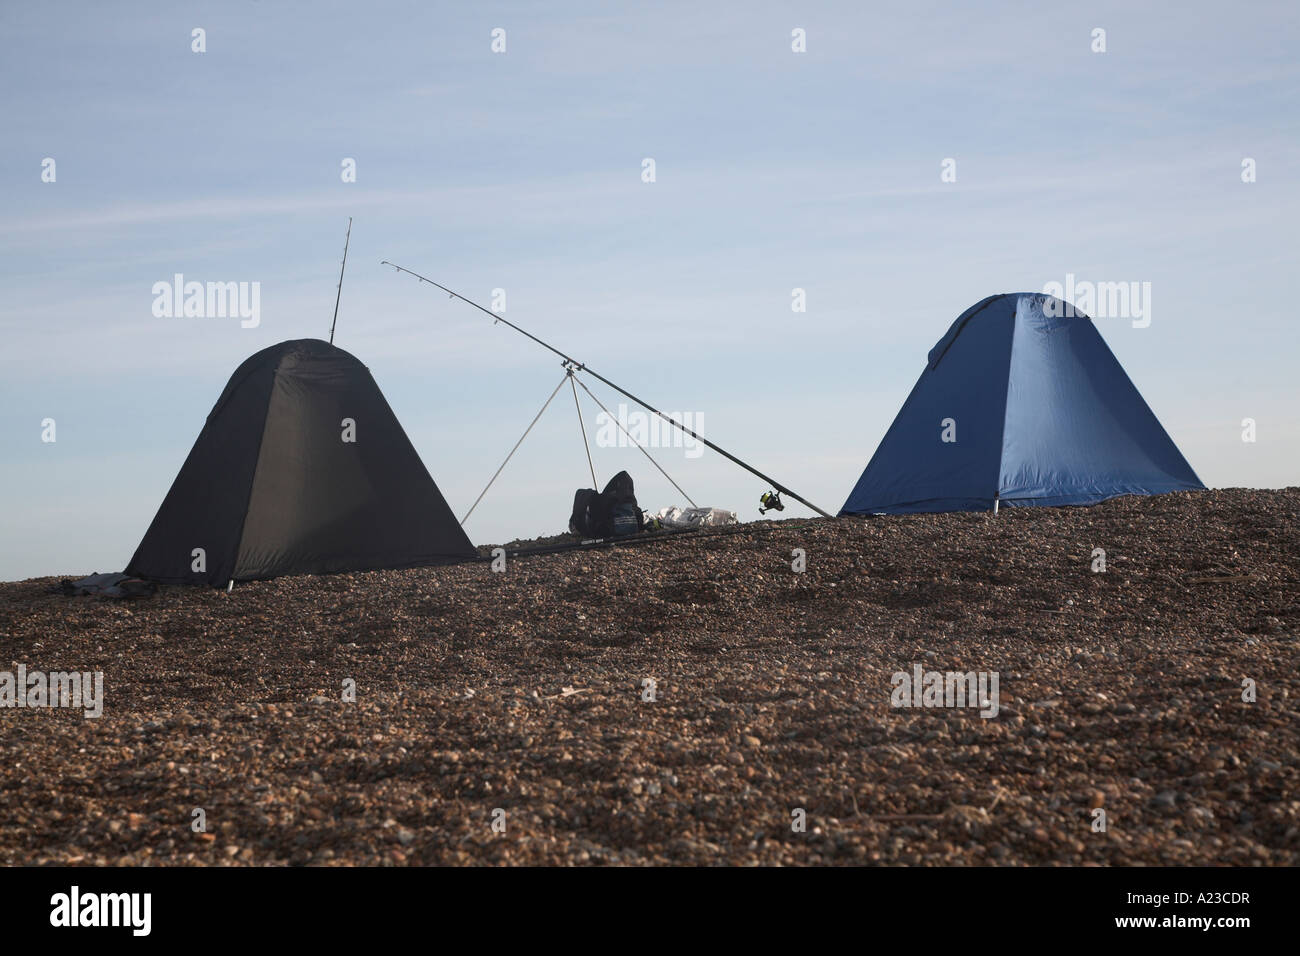 Fishing tents on the beach at Shingle Street, Suffolk, England - Stock Image